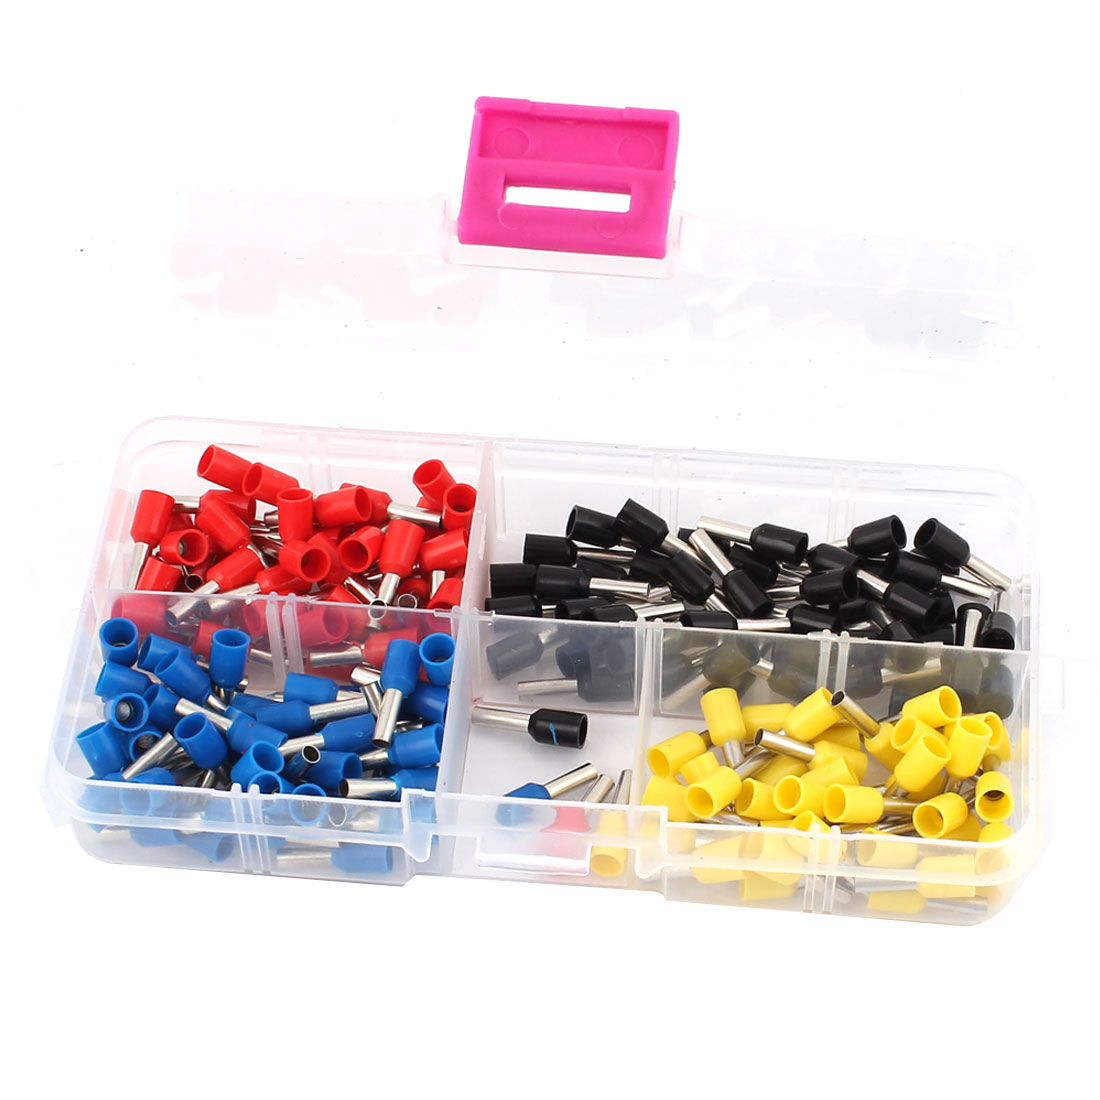 200PCS AWG14 Ferrule Terminal Wire Crimp Connector Cord Ends Assorted Set